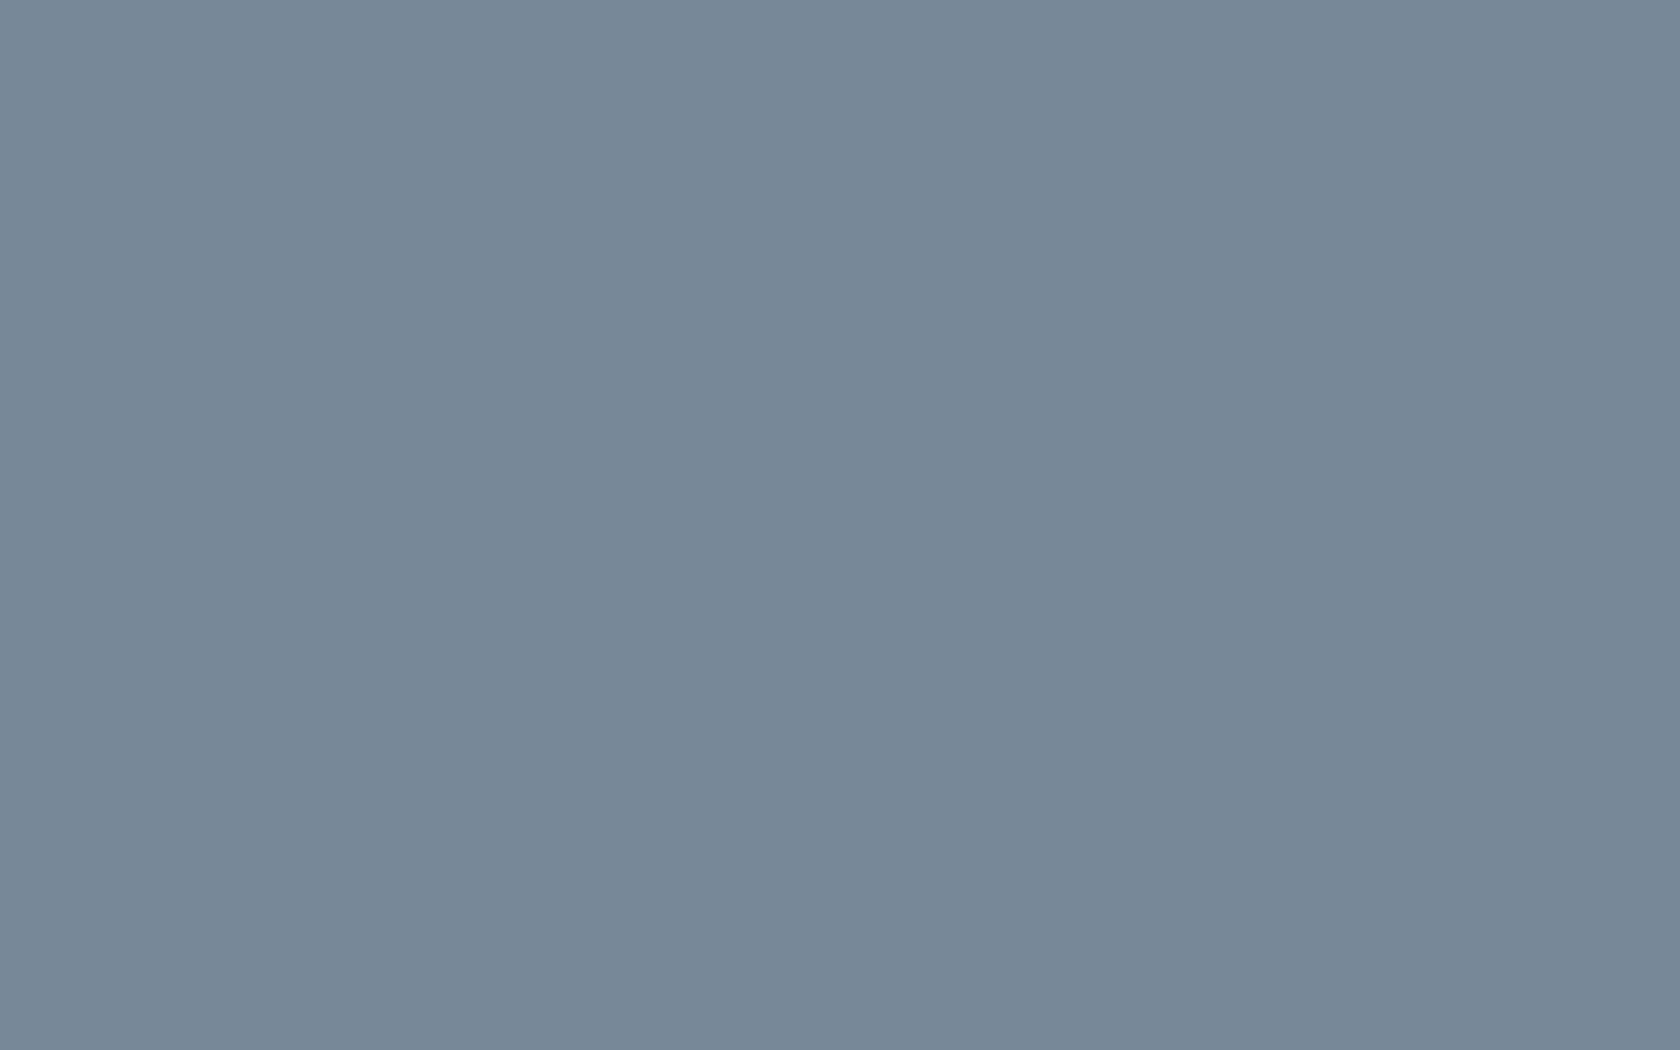 1680x1050 Light Slate Gray Solid Color Background